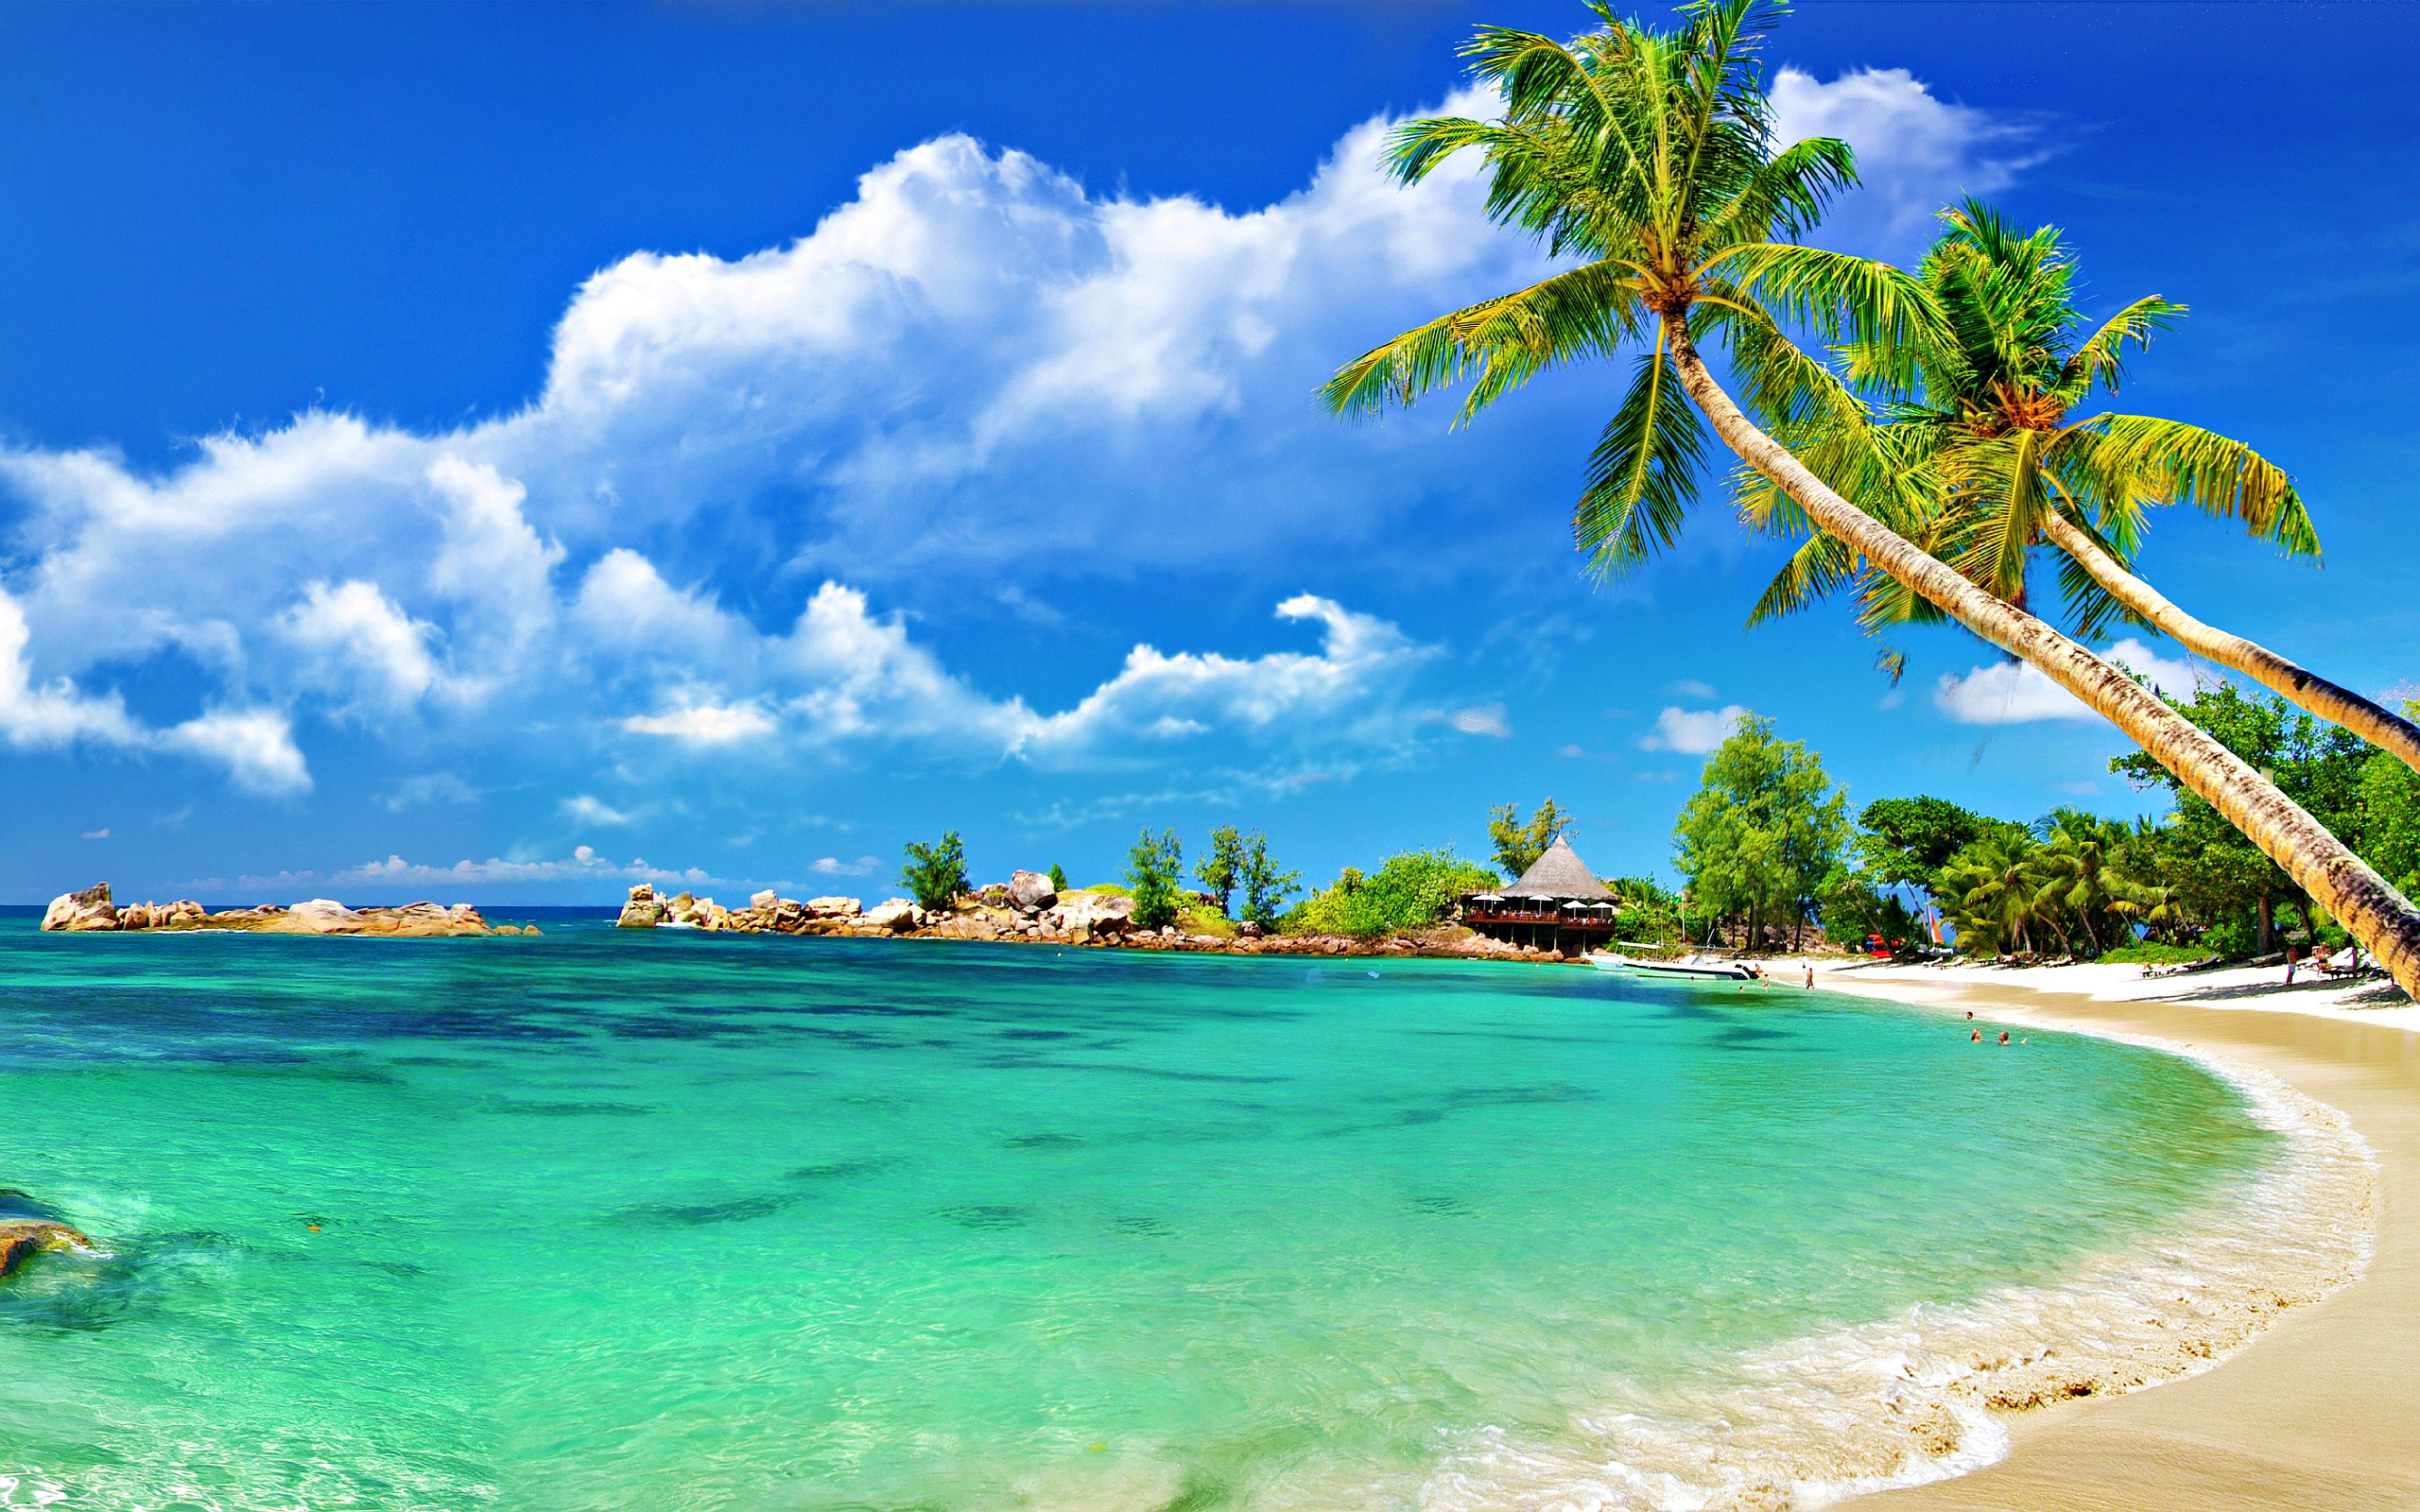 wallpaper Tropical Beach Wallpapers hd wallpaper background desktop 2560x1600